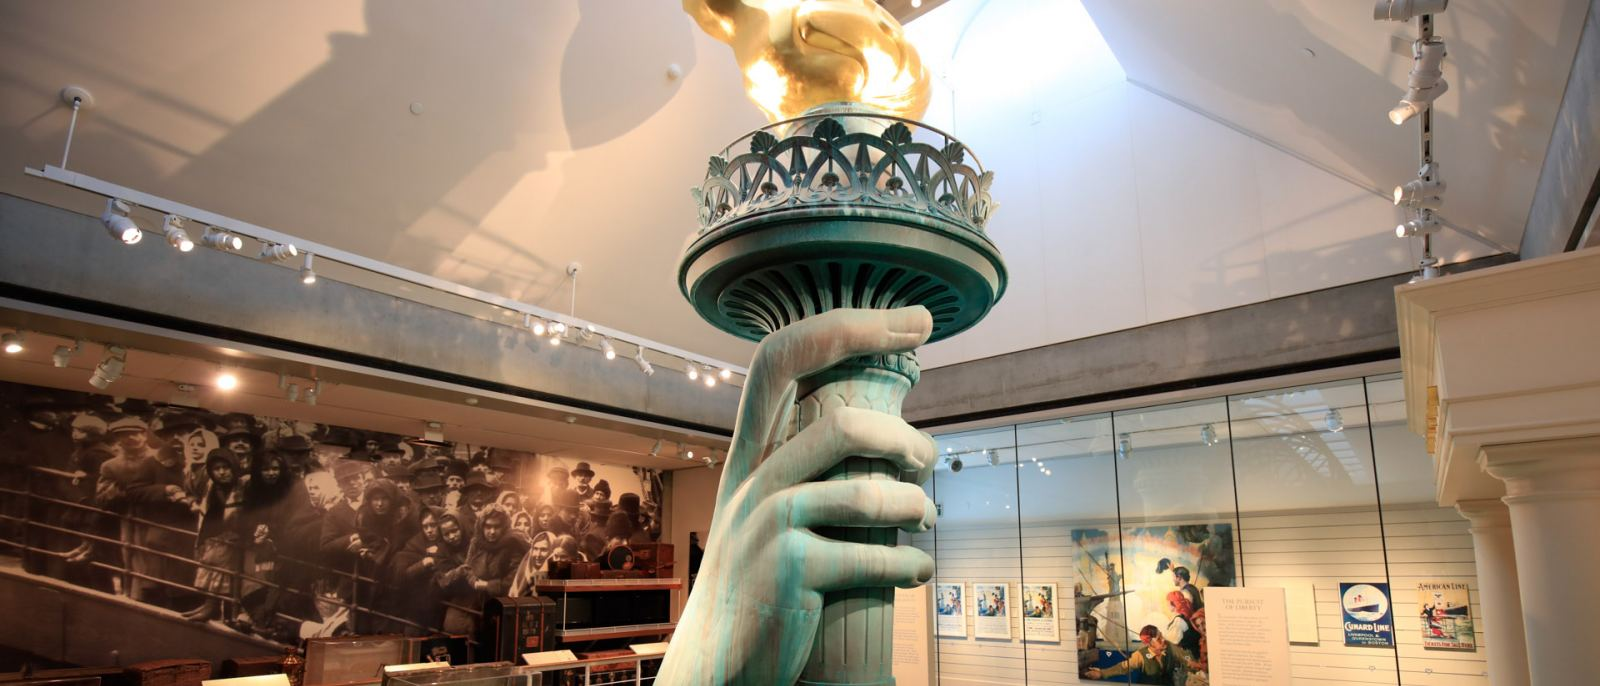 Statue of Liberty Torch at Skirball Cultural Center